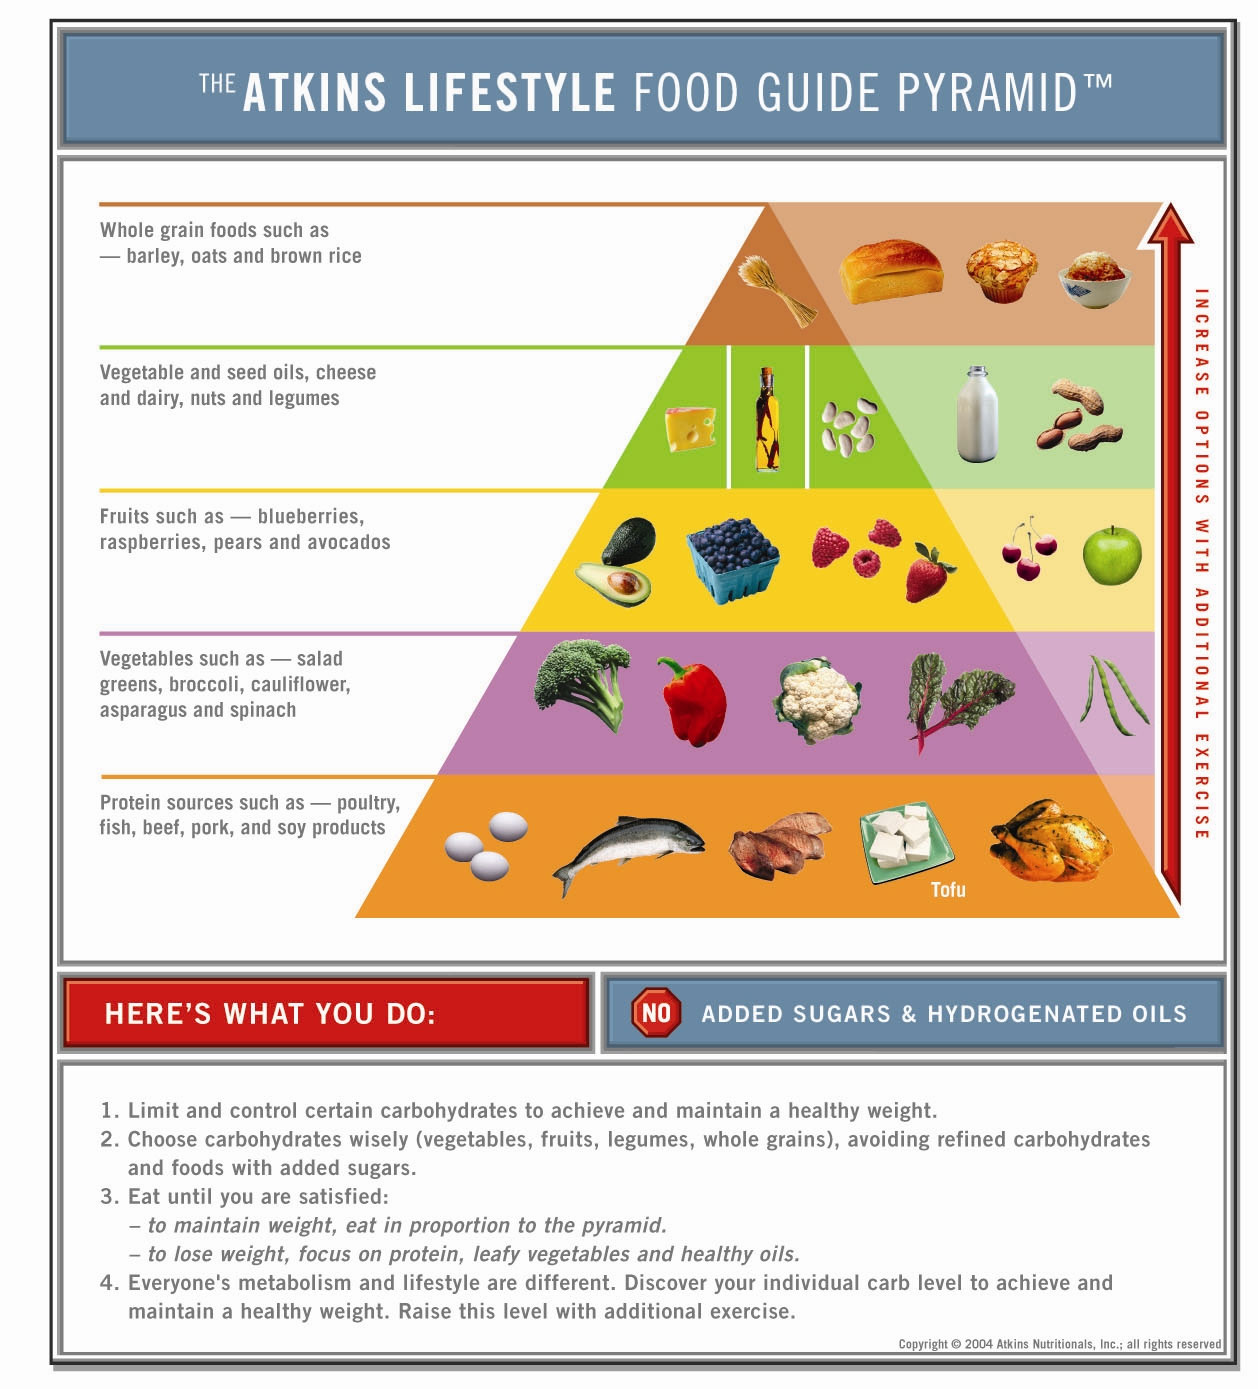 ... for a printable version of the Atkins Lifestyle Food Guide Pyramid